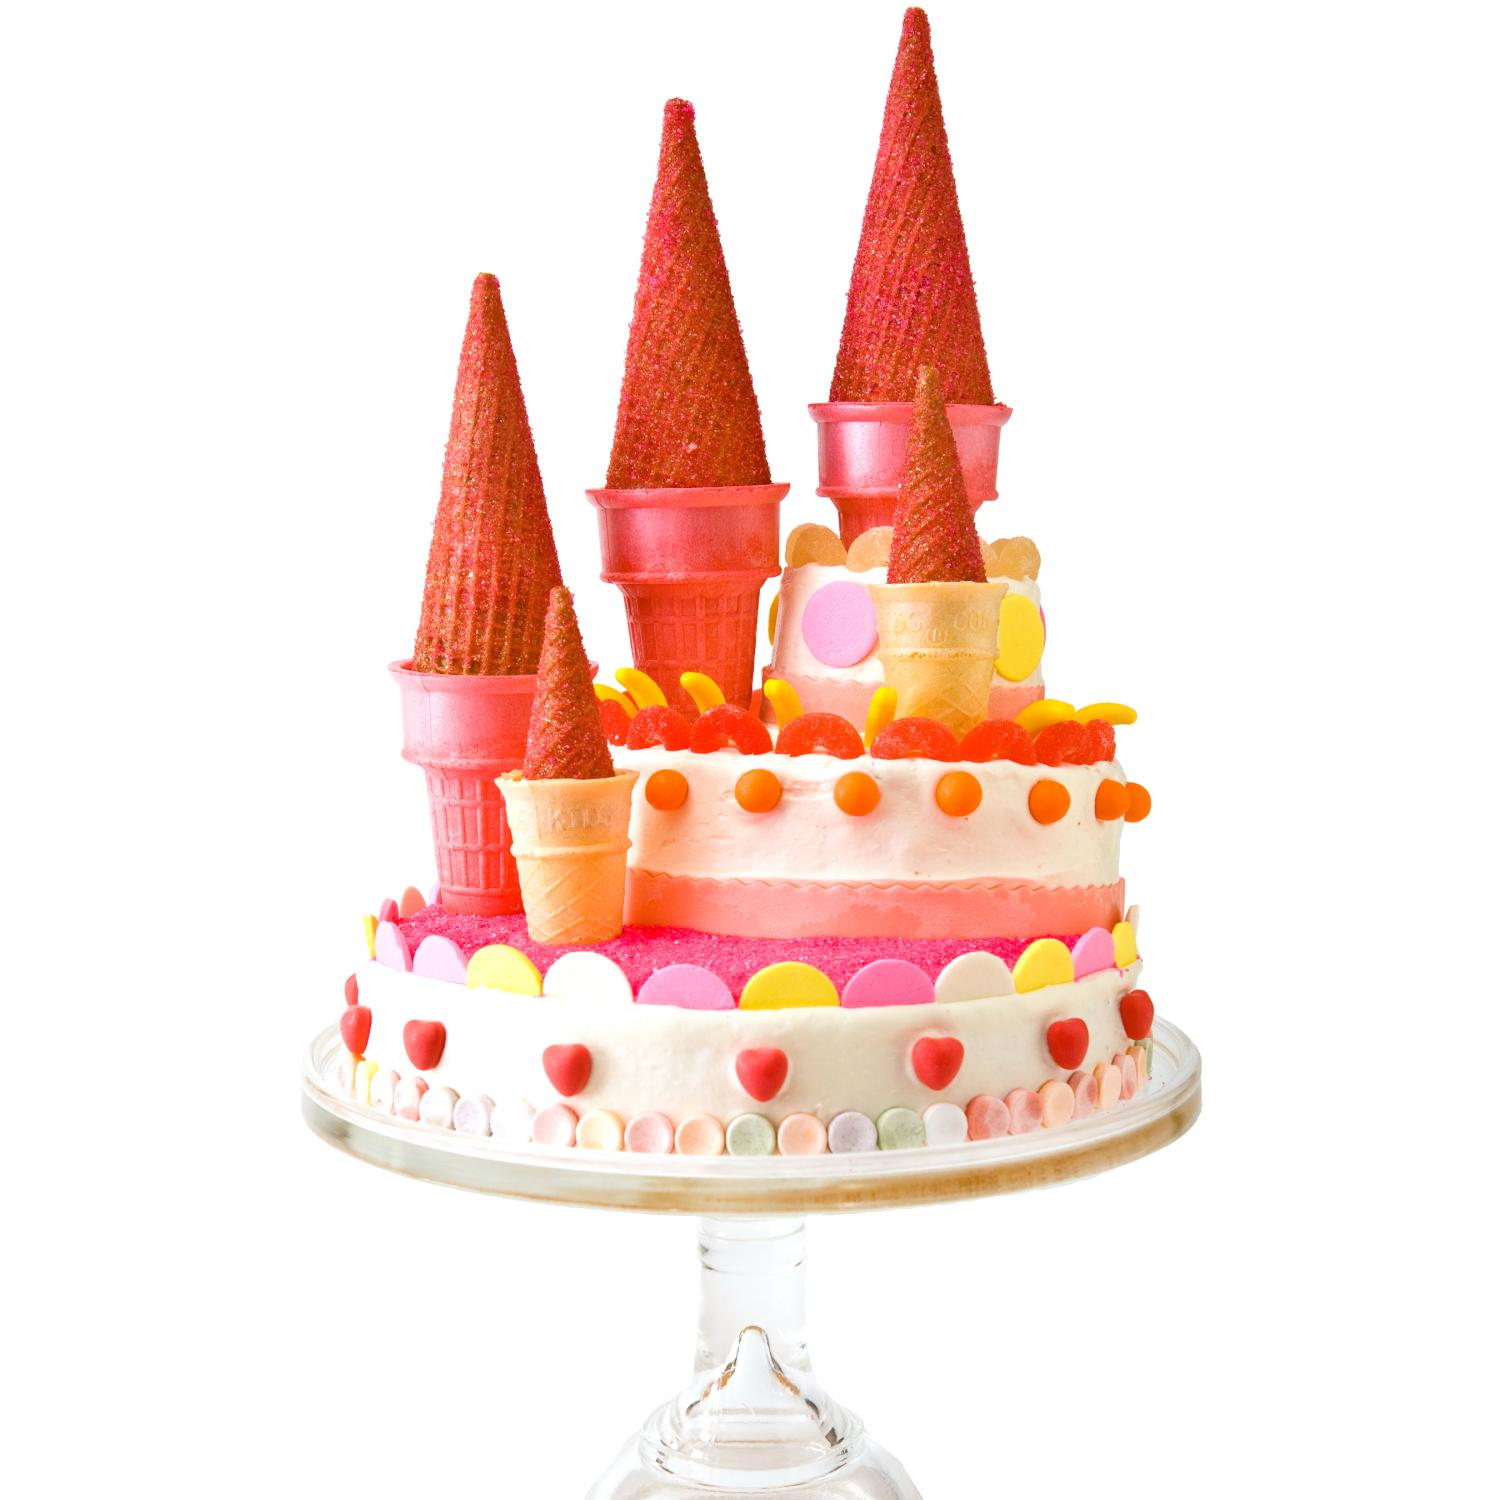 Castle Birthday Cake Design Parenting